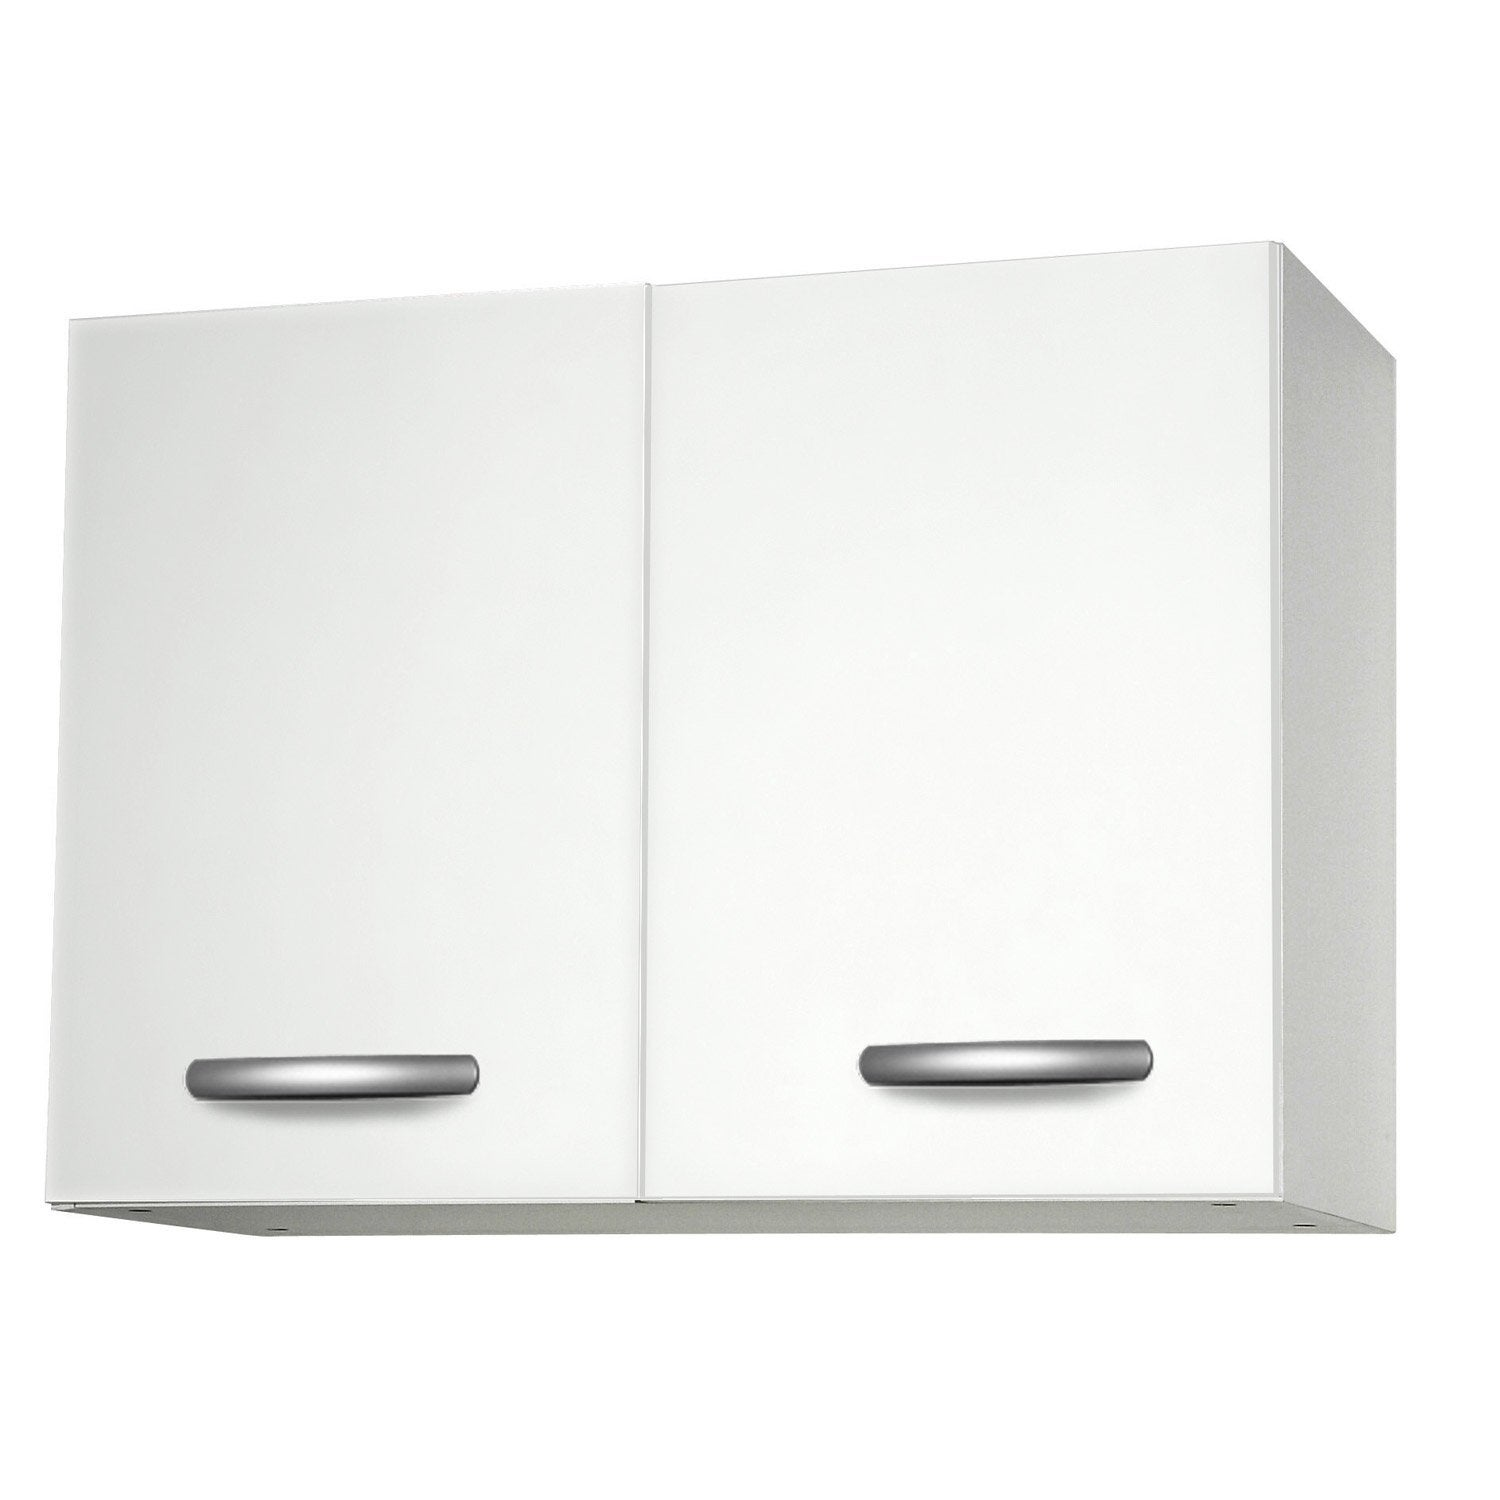 Meuble de cuisine haut 2 portes blanc l80x p35 for Portes elements cuisine leroy merlin